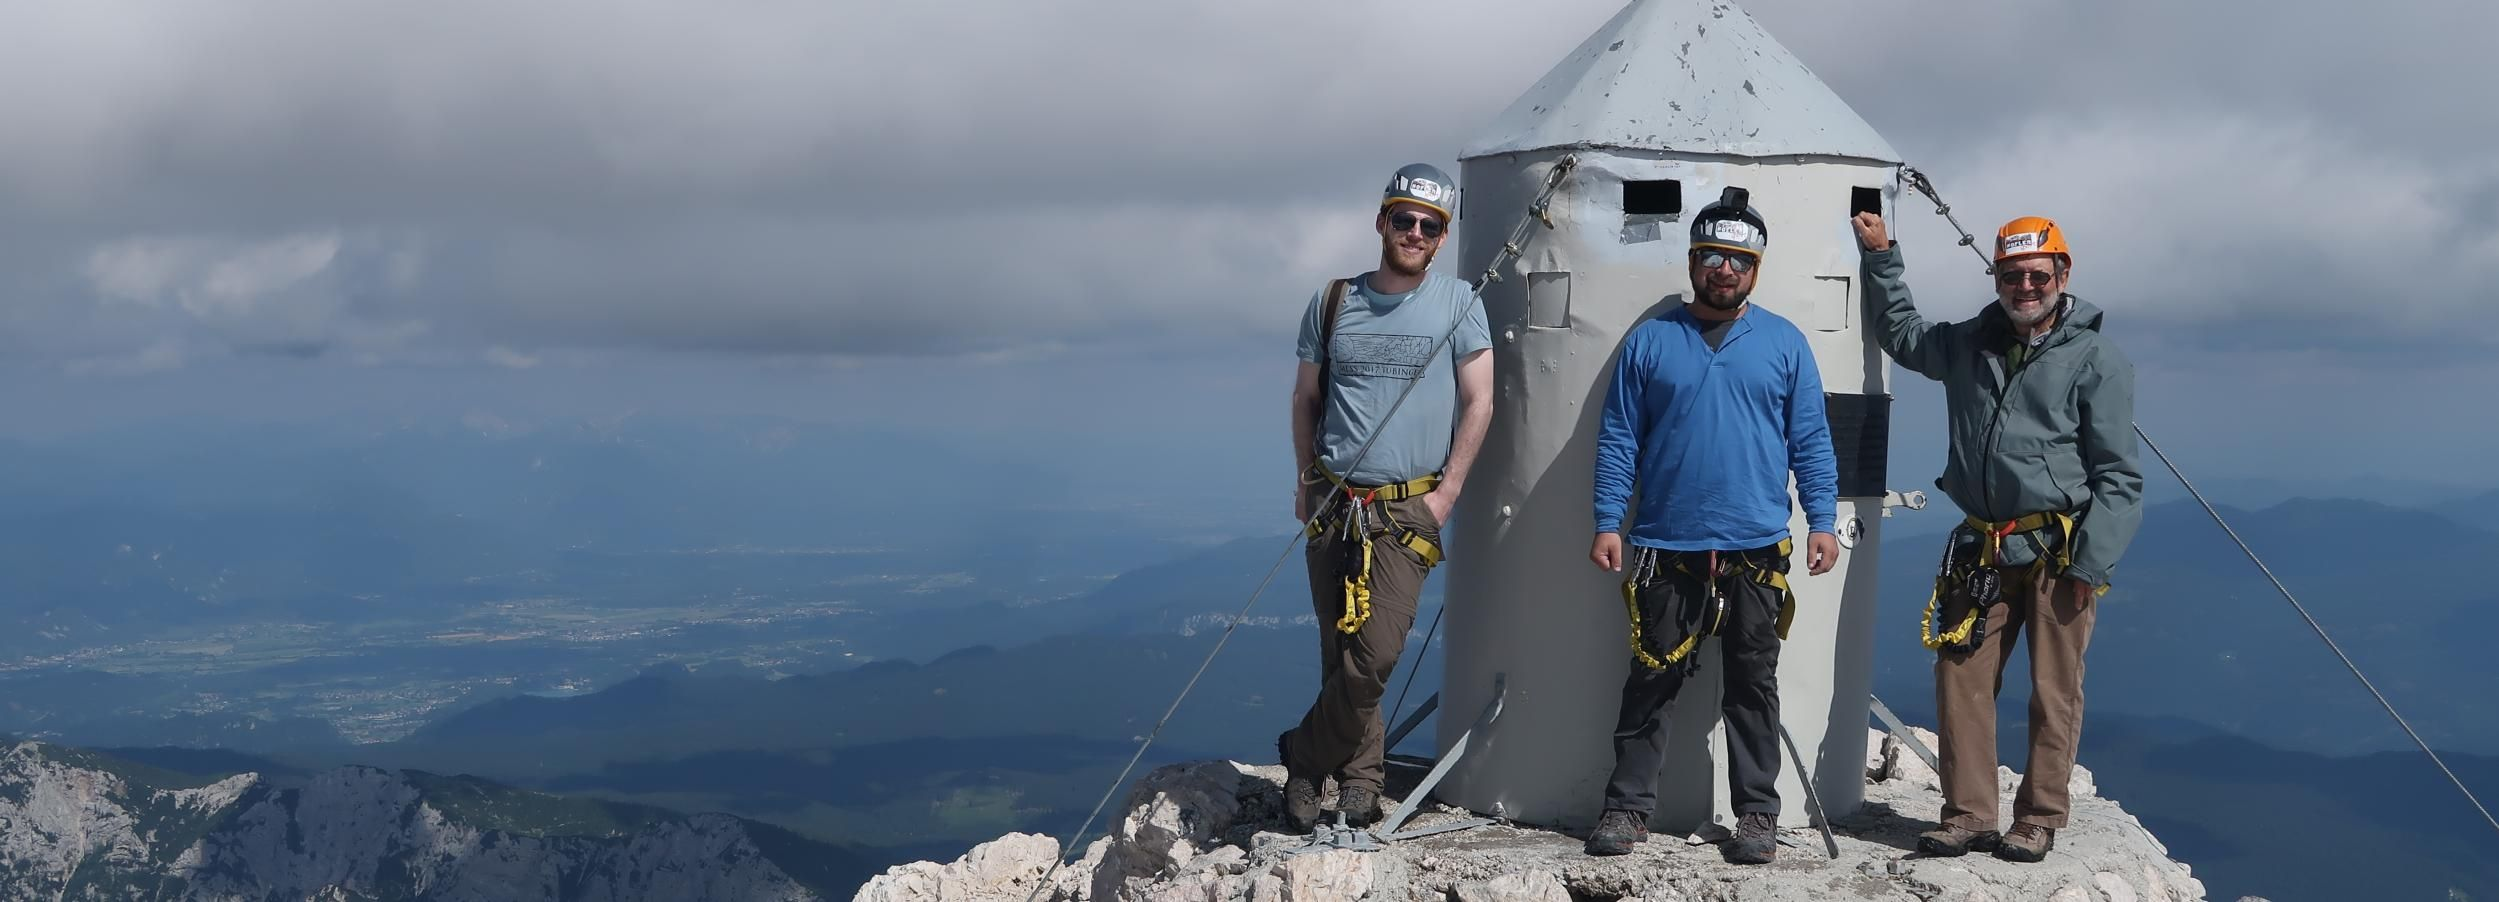 Bled 2 Day Triglav Mountain Summit Hike Getyourguide